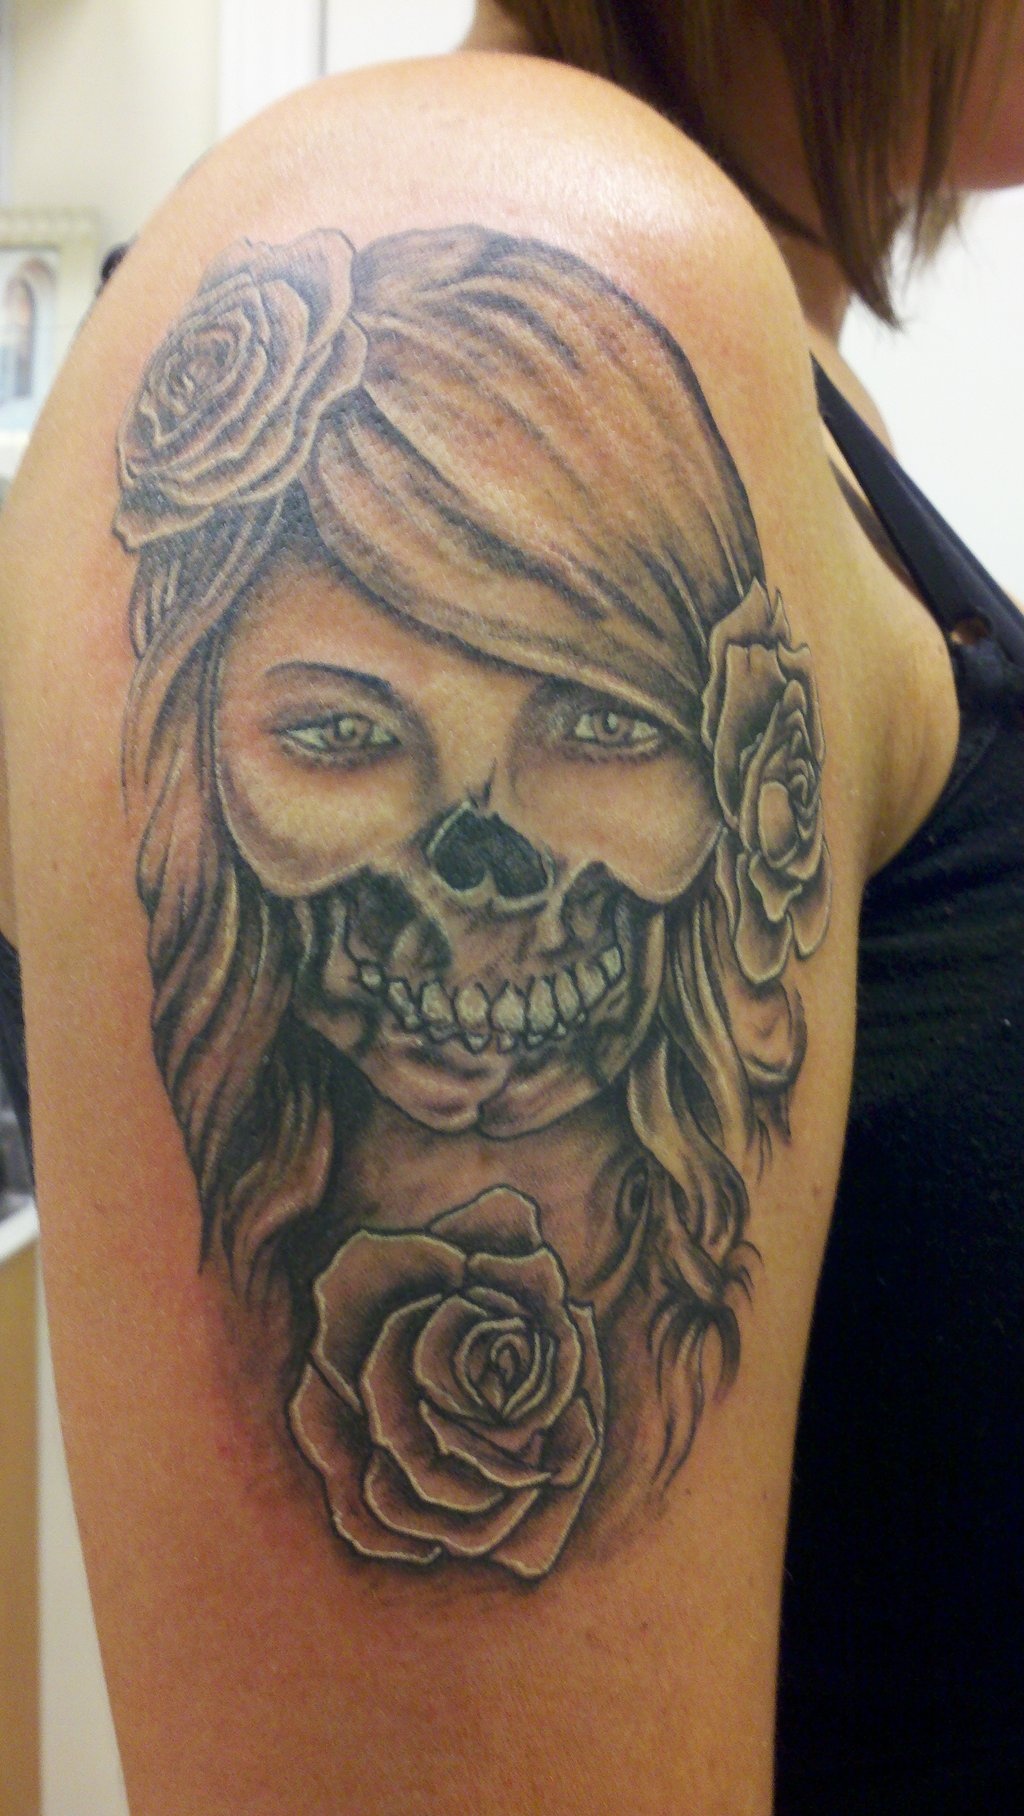 day of the dead tattoos designs ideas and meaning tattoos for you. Black Bedroom Furniture Sets. Home Design Ideas